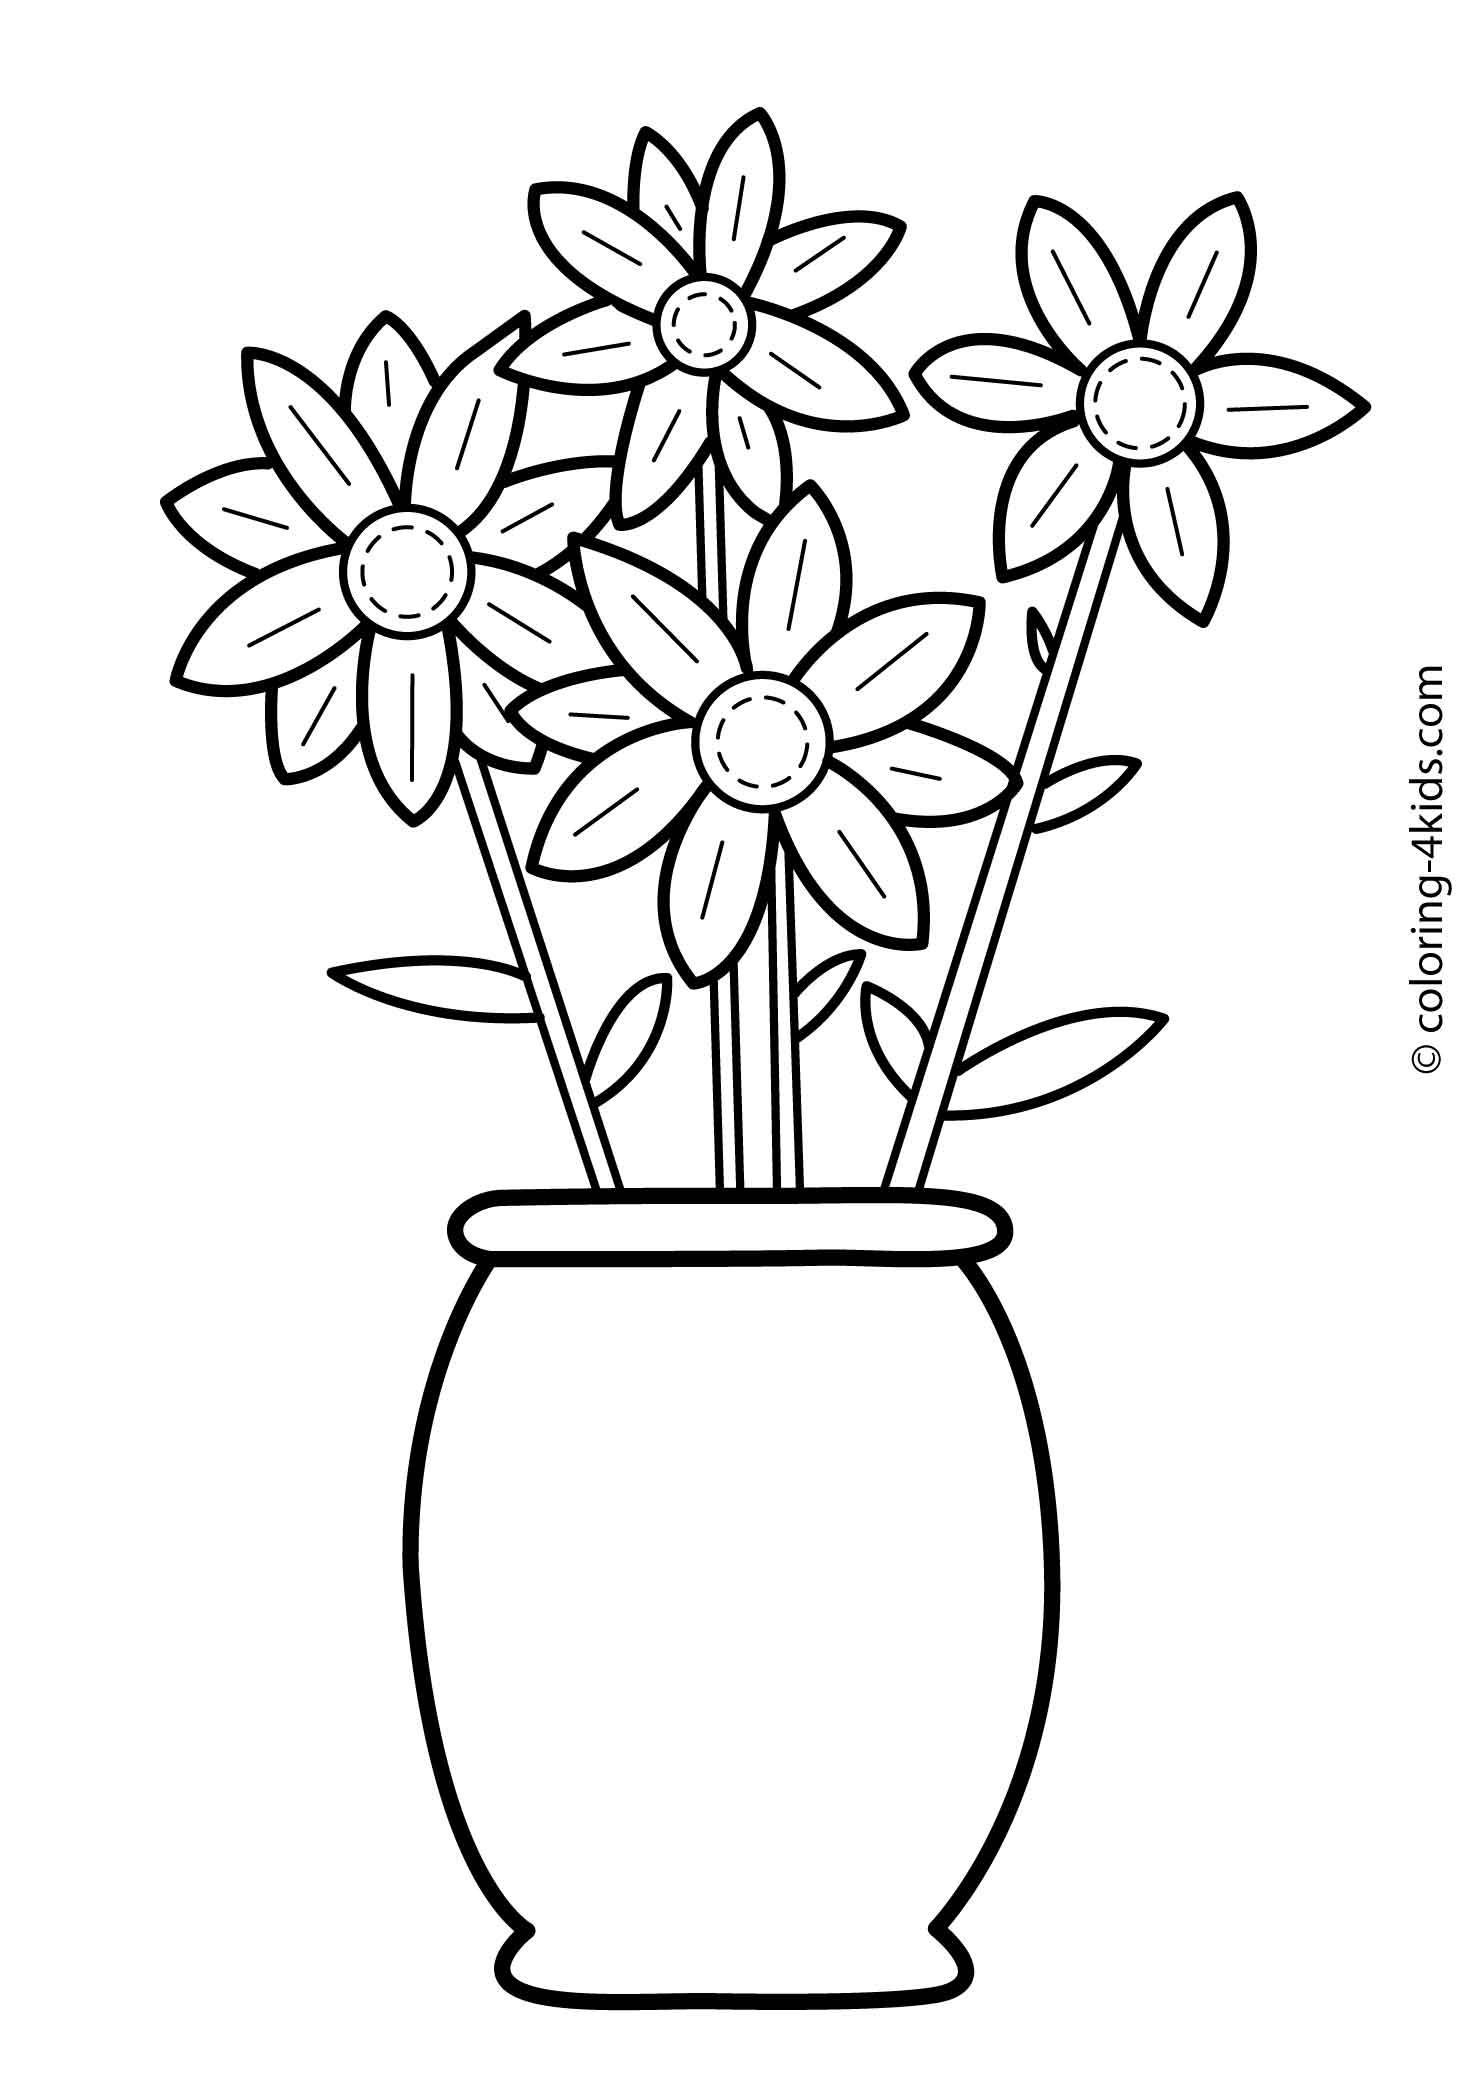 Flowers coloring pages for kids, printable, 6 Ανοιξη